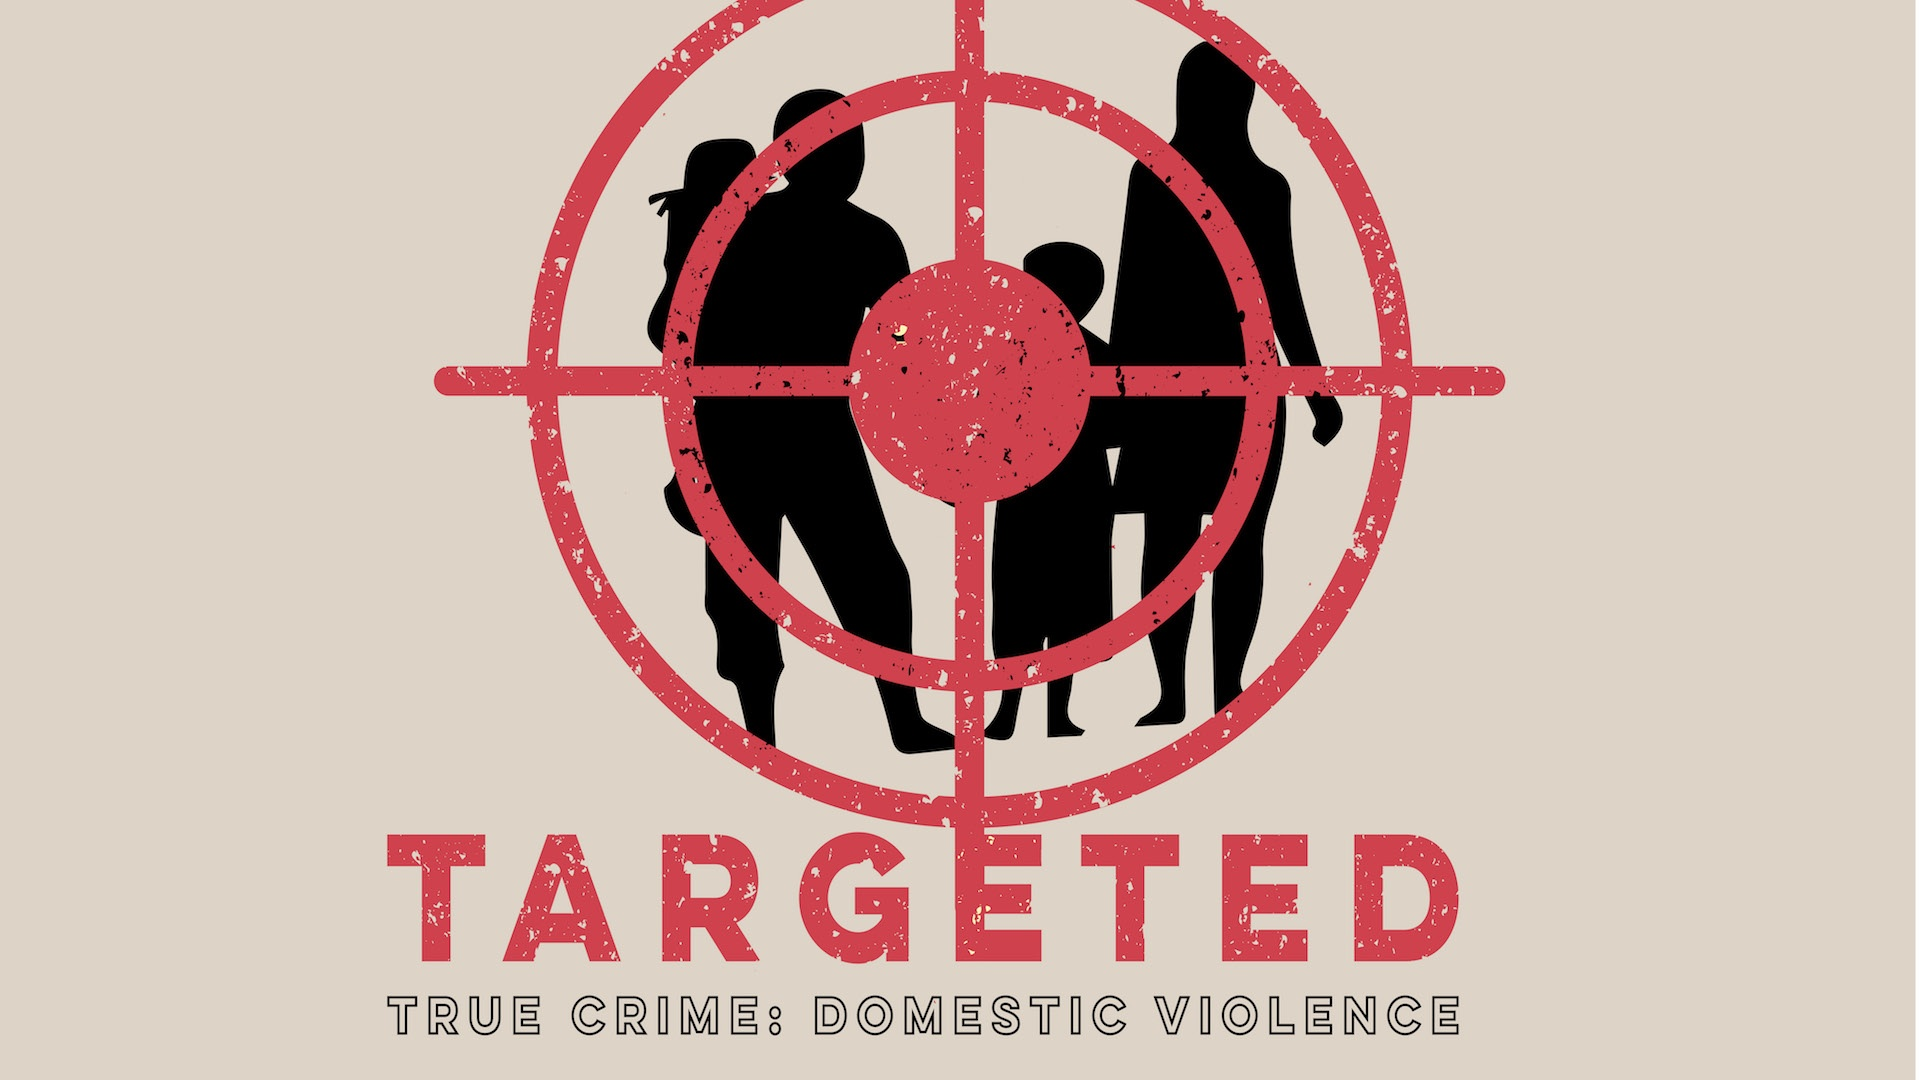 targetedpodcast Cover